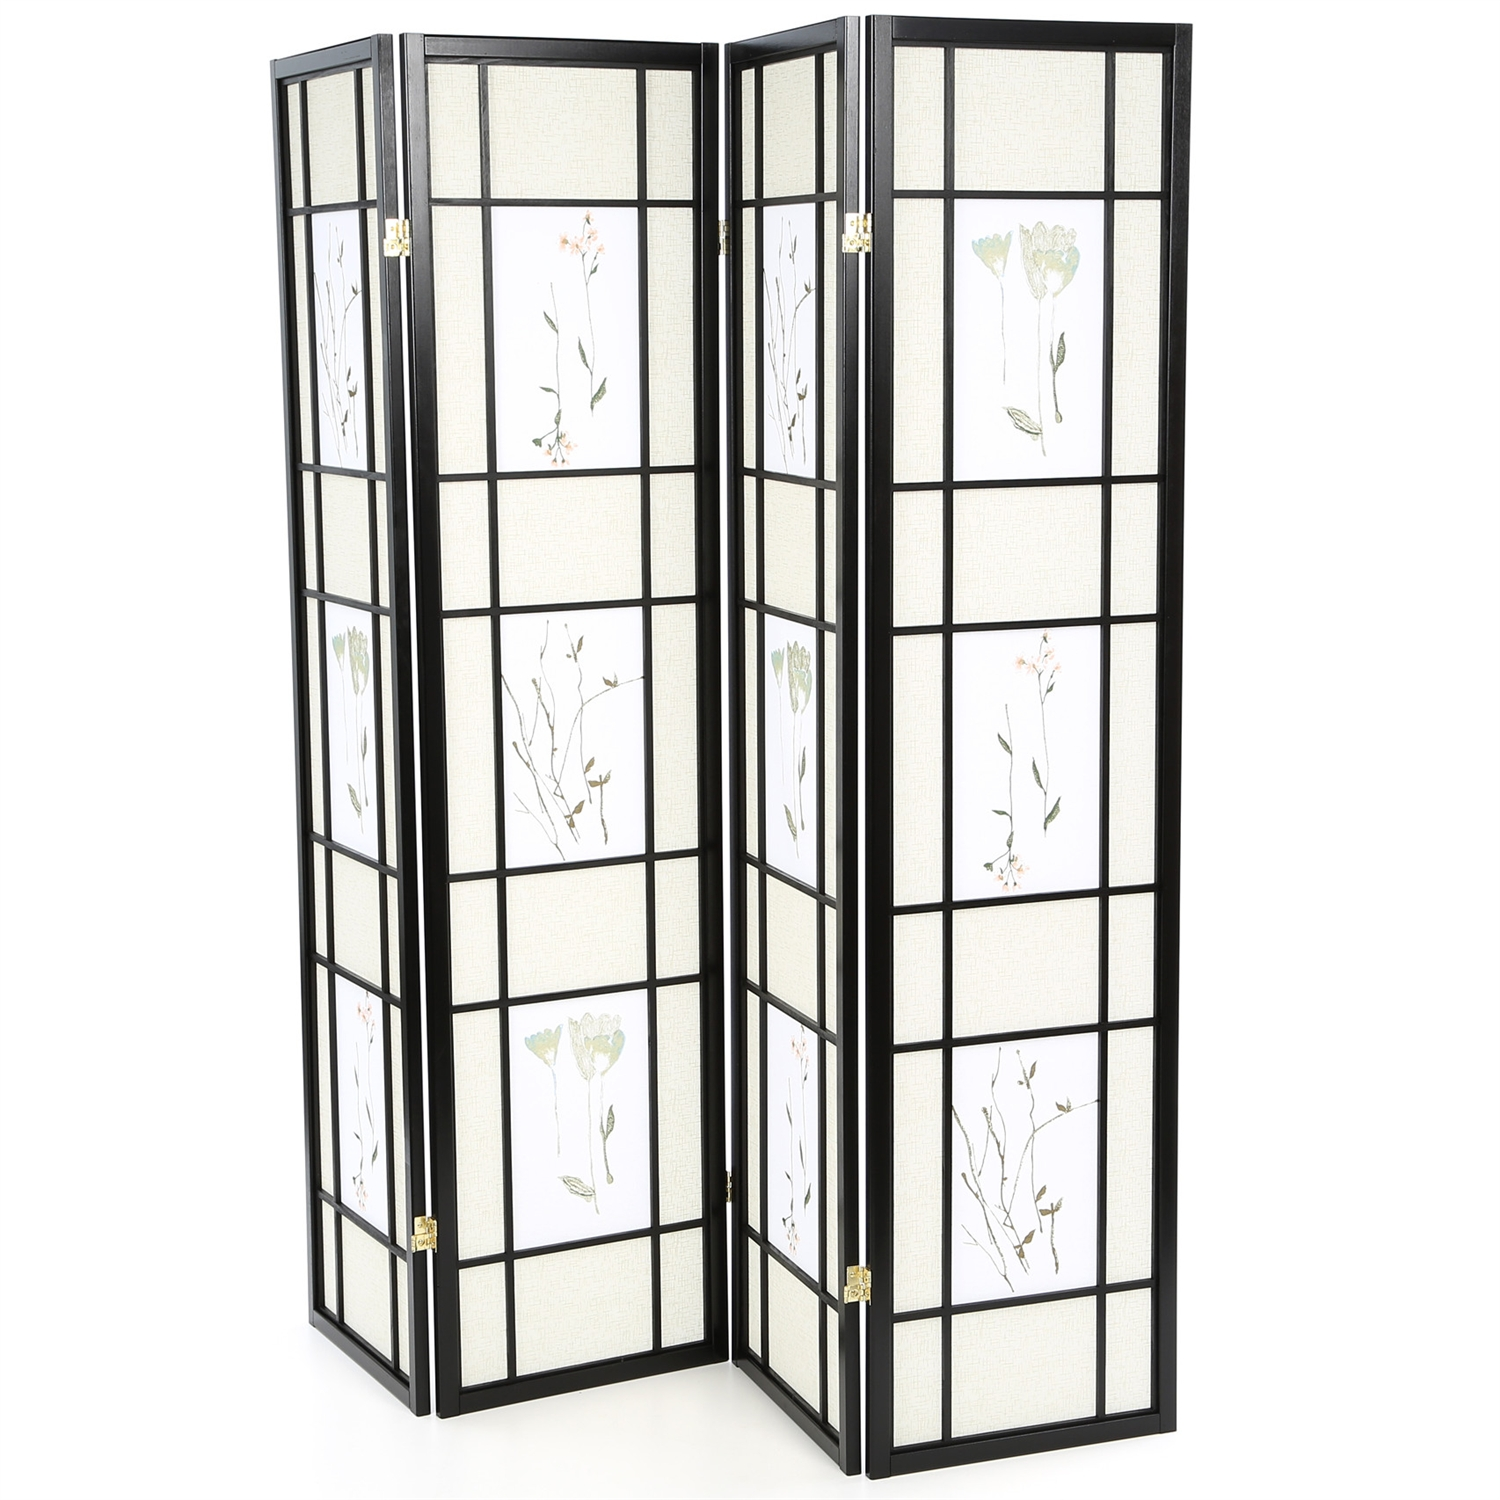 Prime Black 4 Panel Room Divider Shoji Screen With Asian Floral Print Home Interior And Landscaping Ologienasavecom